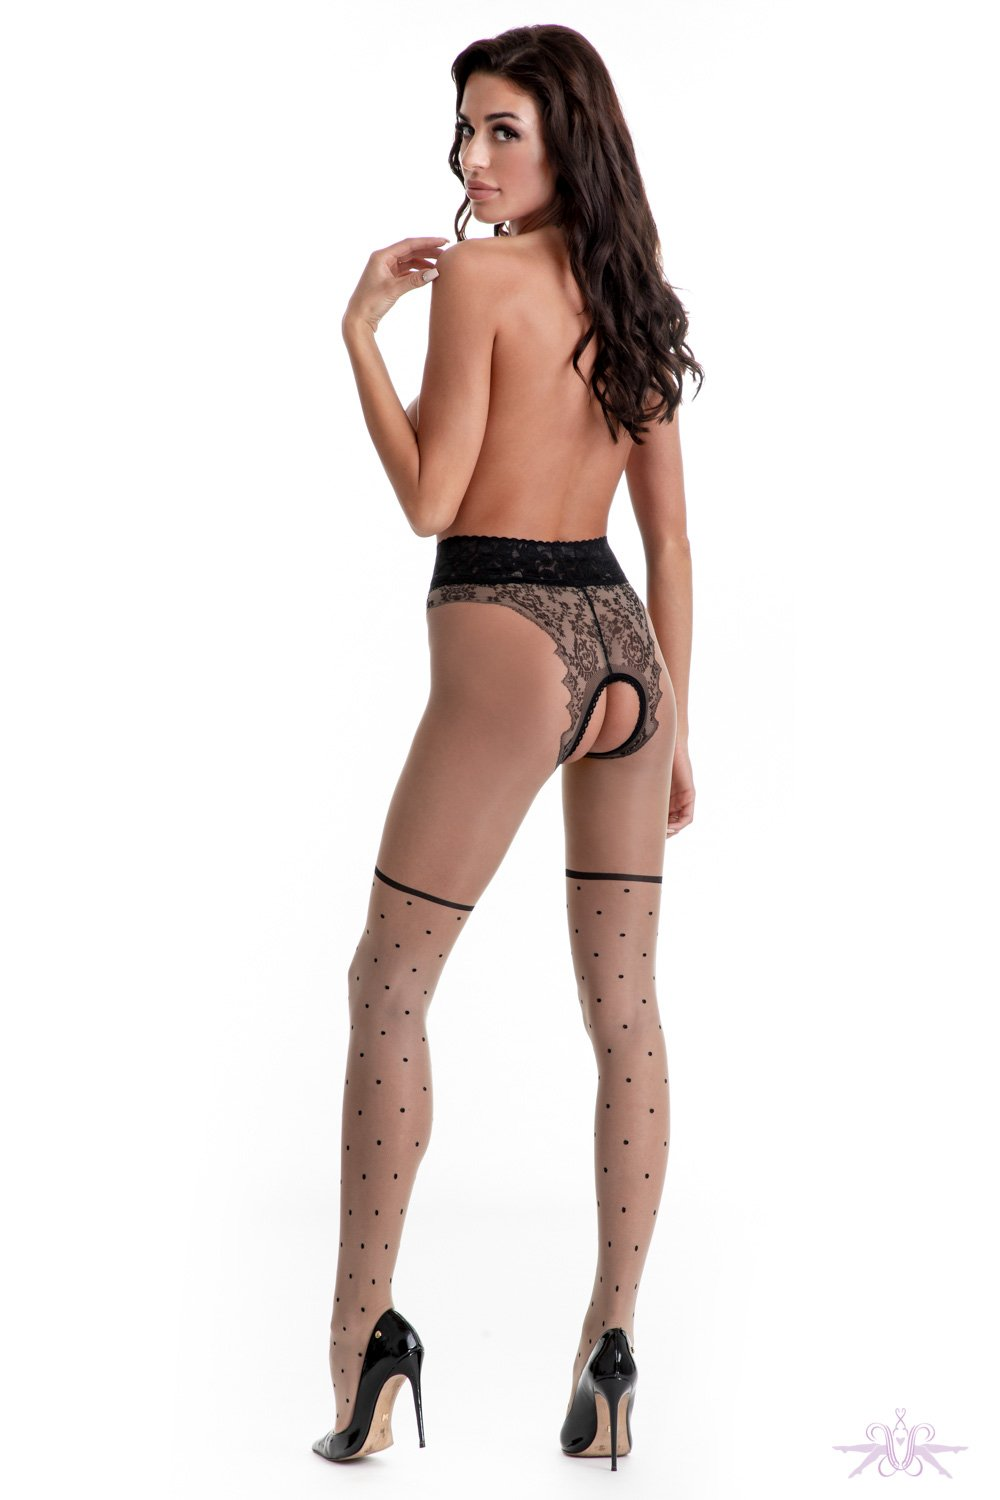 Amour Lolita Crotchless Nude Tights